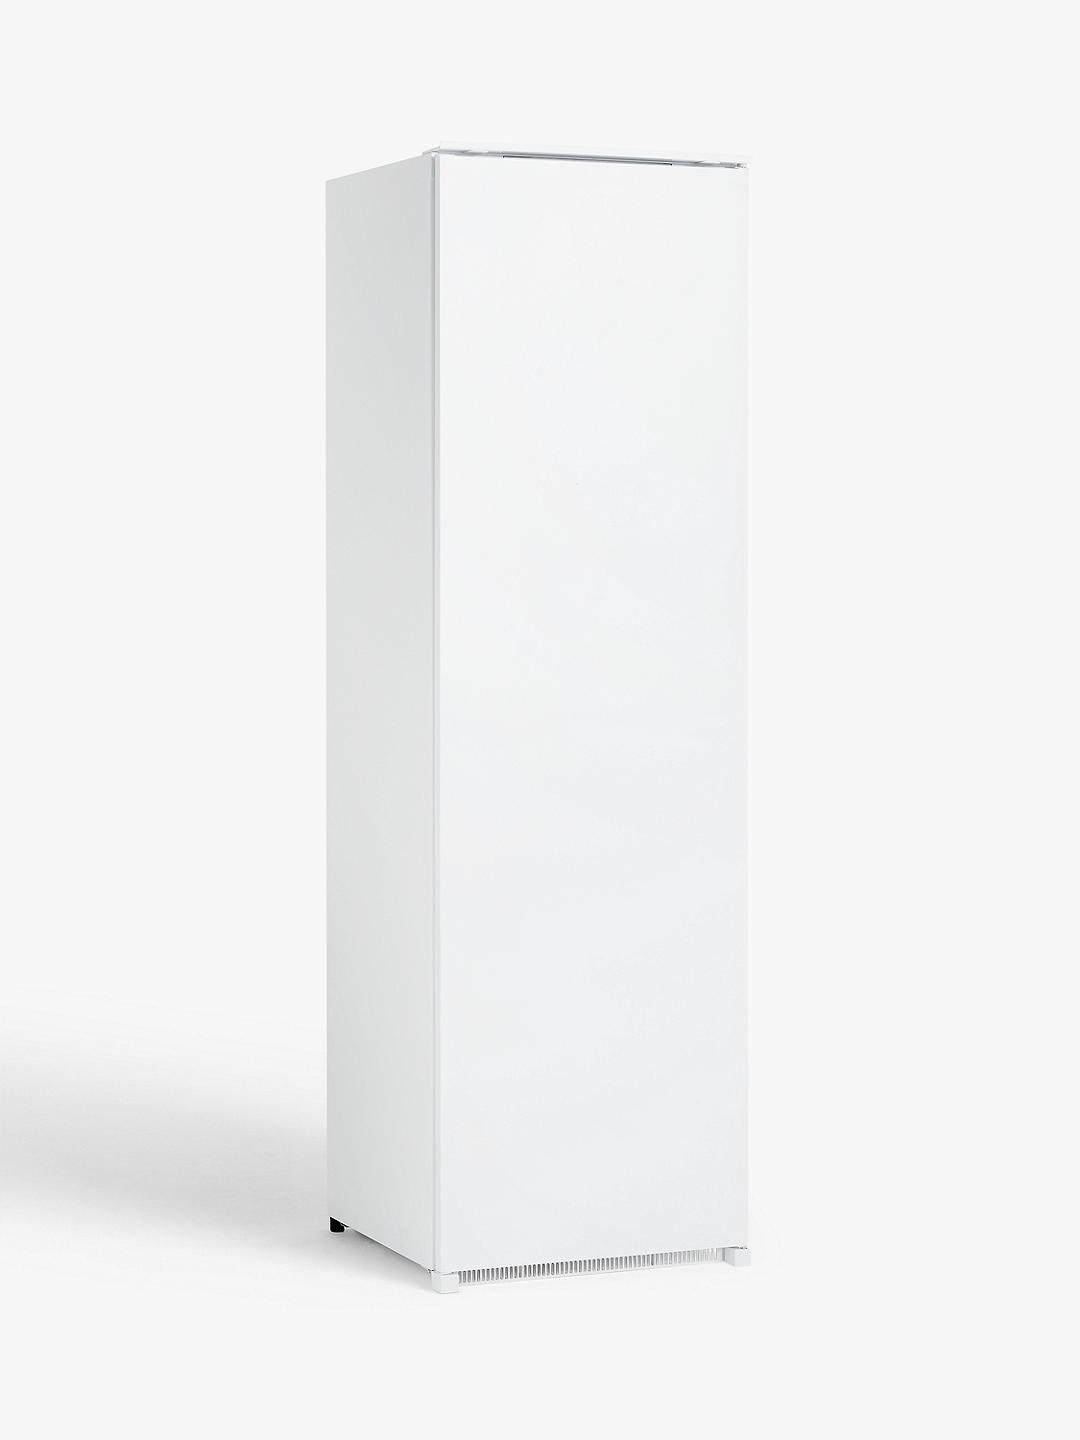 Buy John Lewis & Partners JLBIFIC08 Tall Integrated Freezer, A+ Energy Rating, 54cm Wide, White Online at johnlewis.com